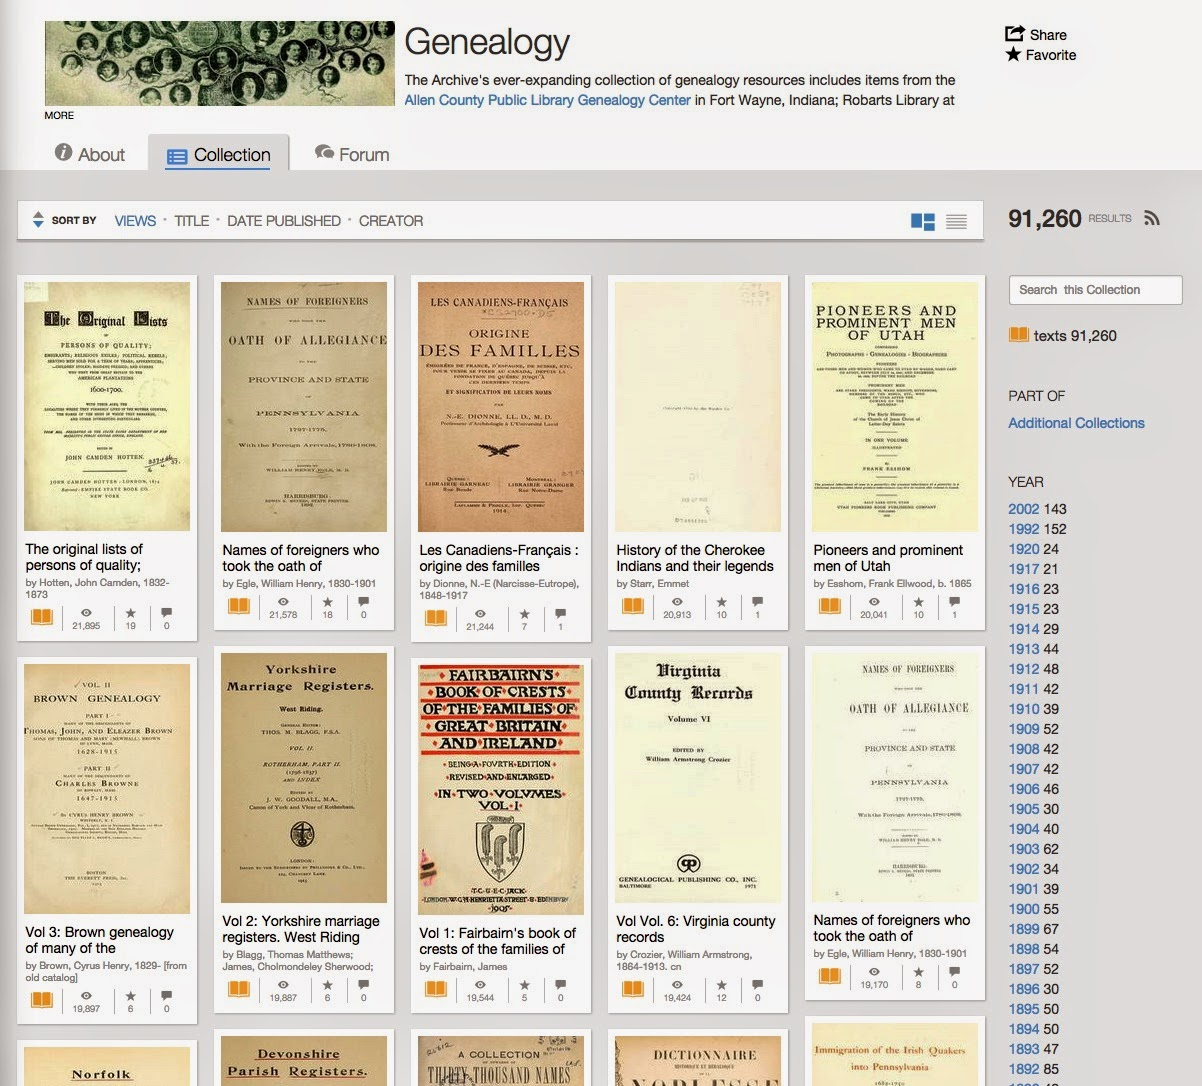 genealogy s star genealogical discoveries from the internet archive